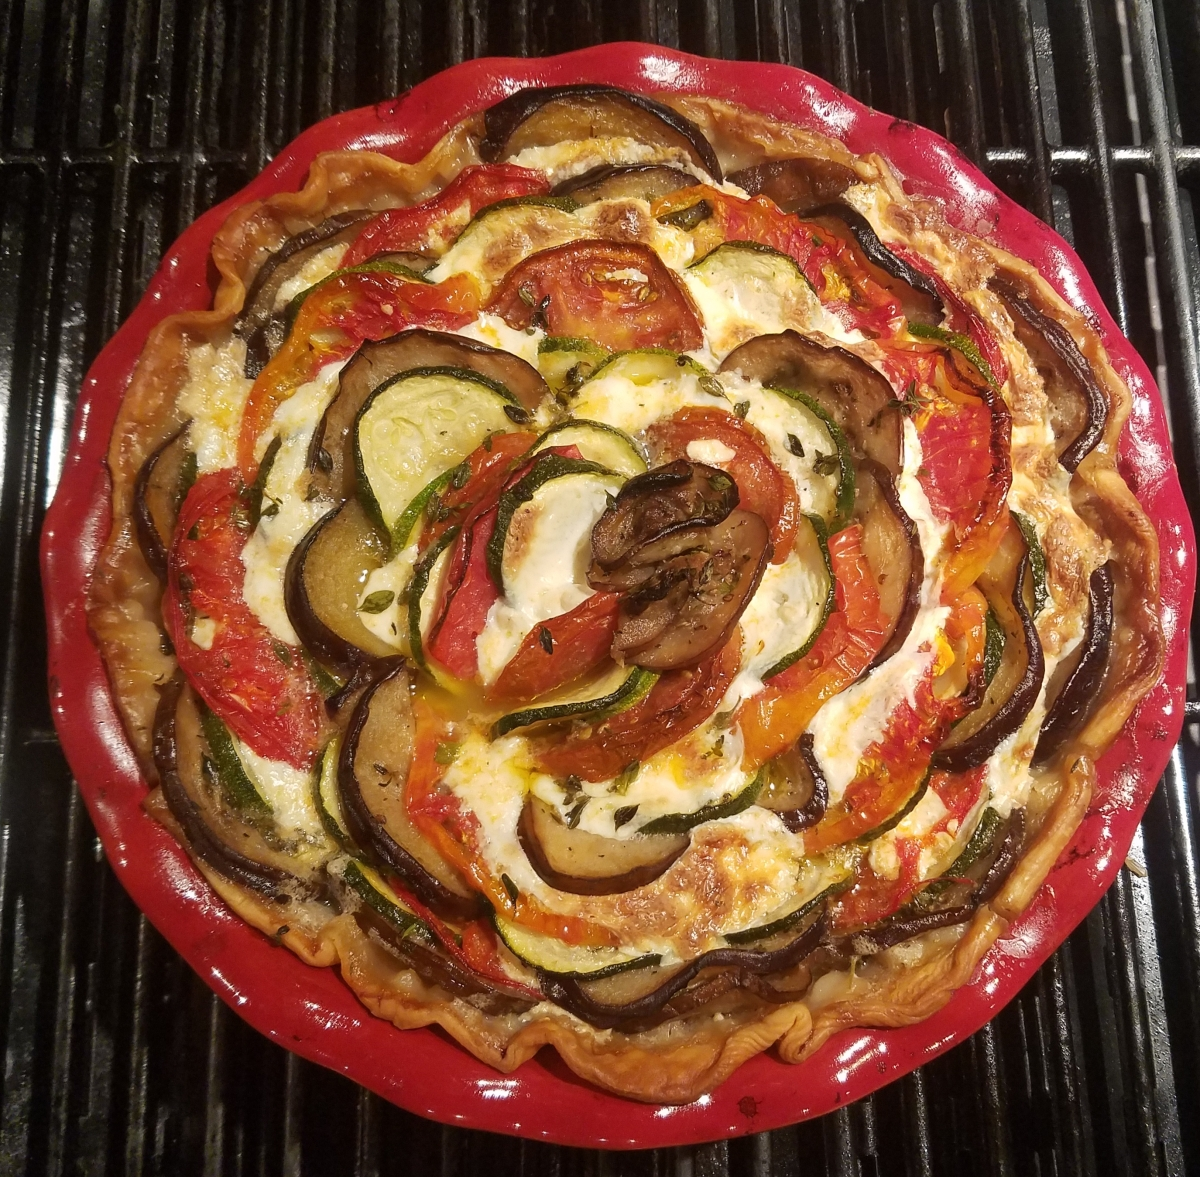 Meatless Monday - Easy Vegetable Tart